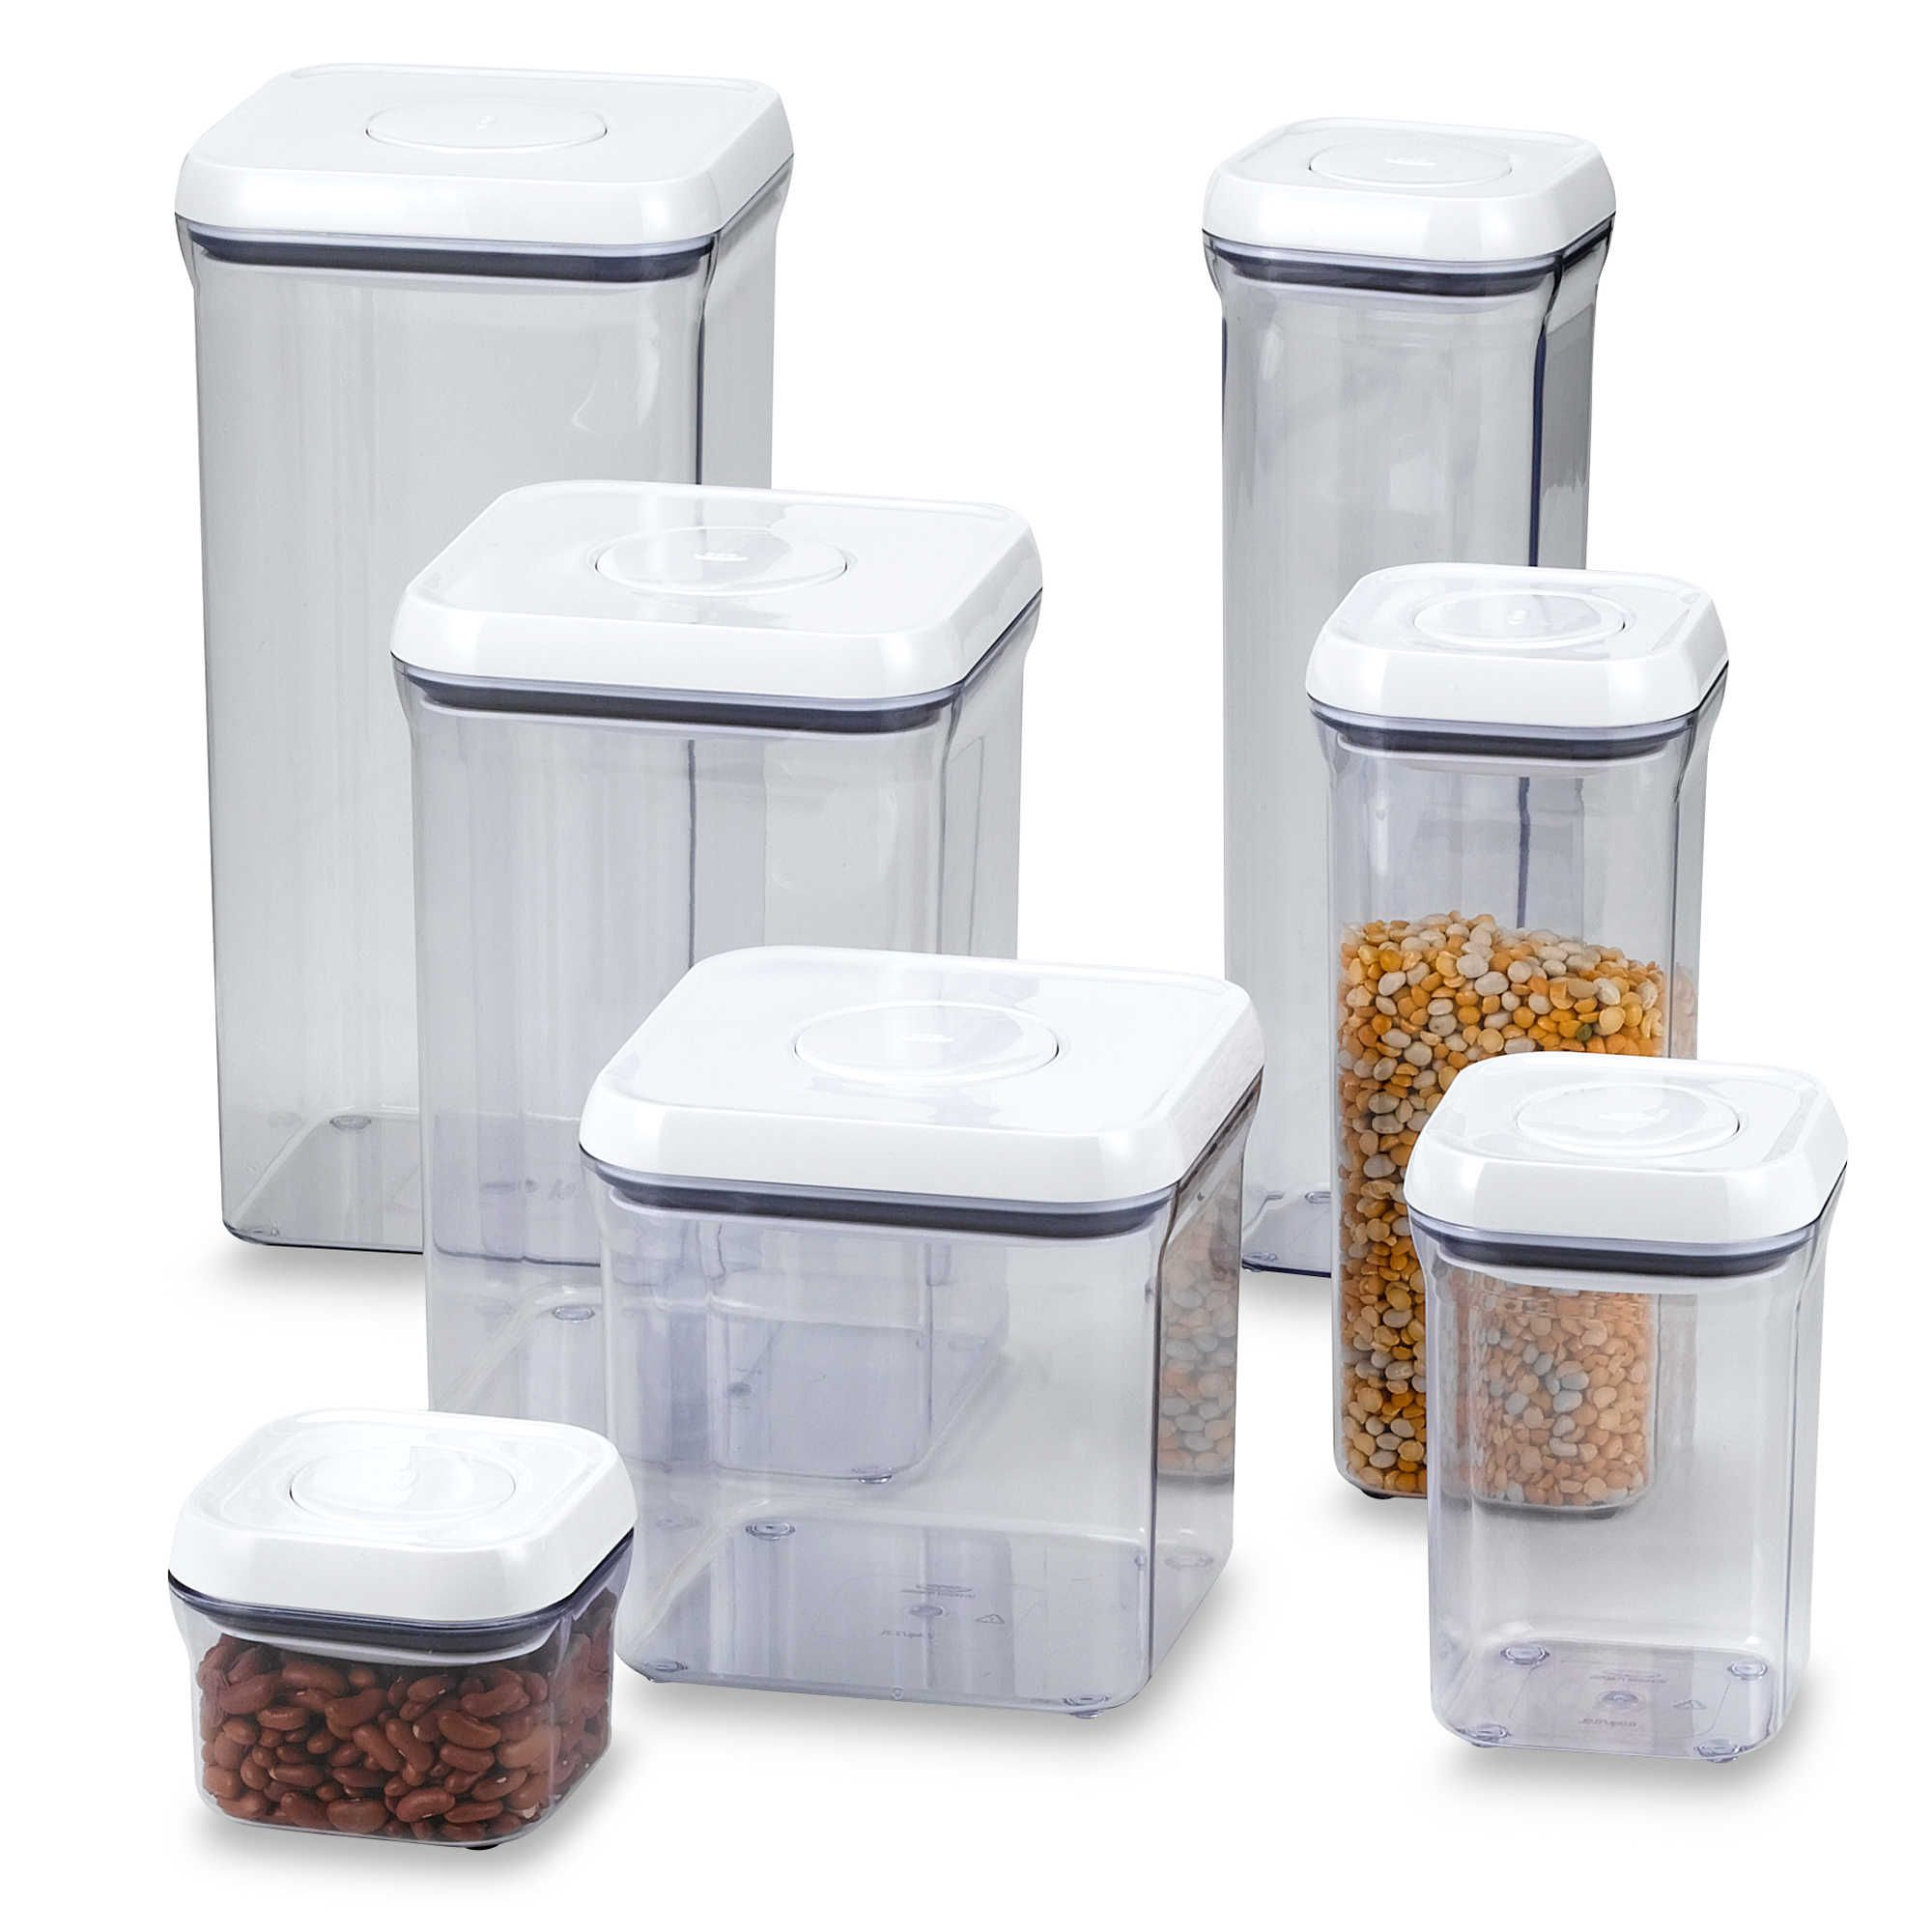 Oxo Good Grips 174 Square Food Storage Pop Container Oxo